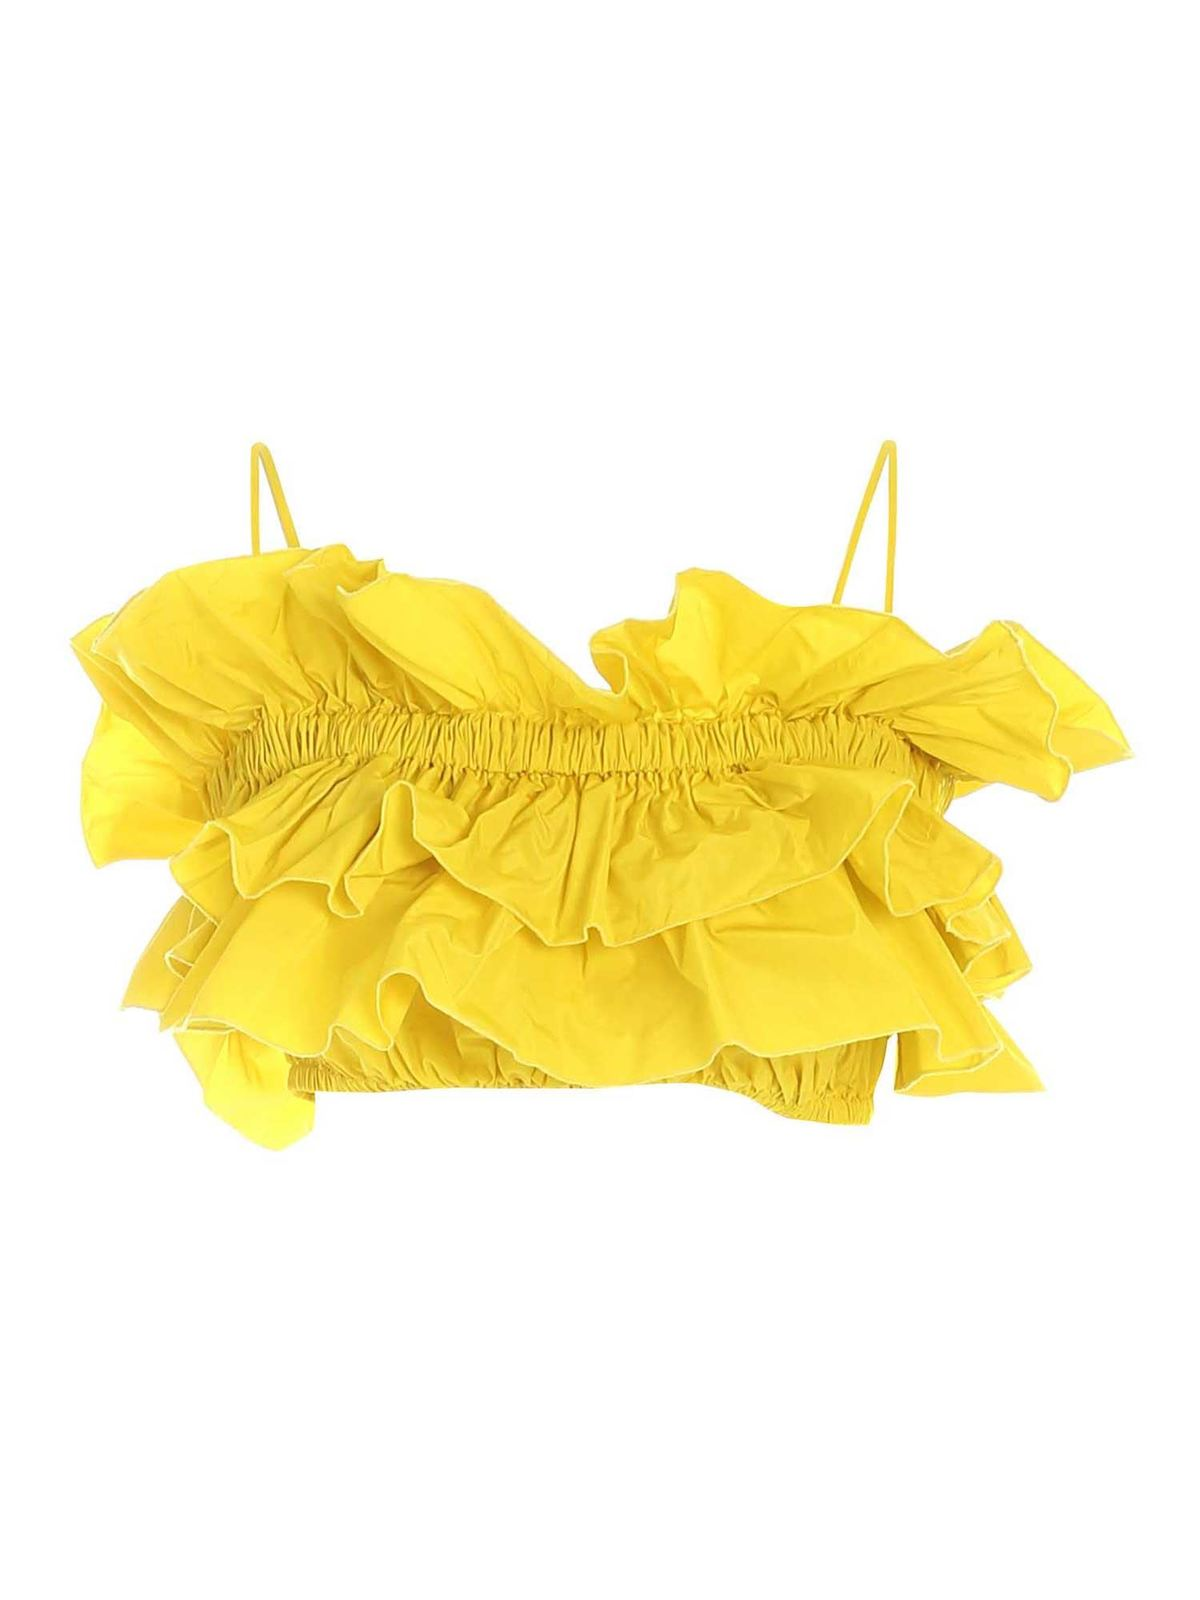 Msgm Clothing RUFFLES TOP IN YELLOW